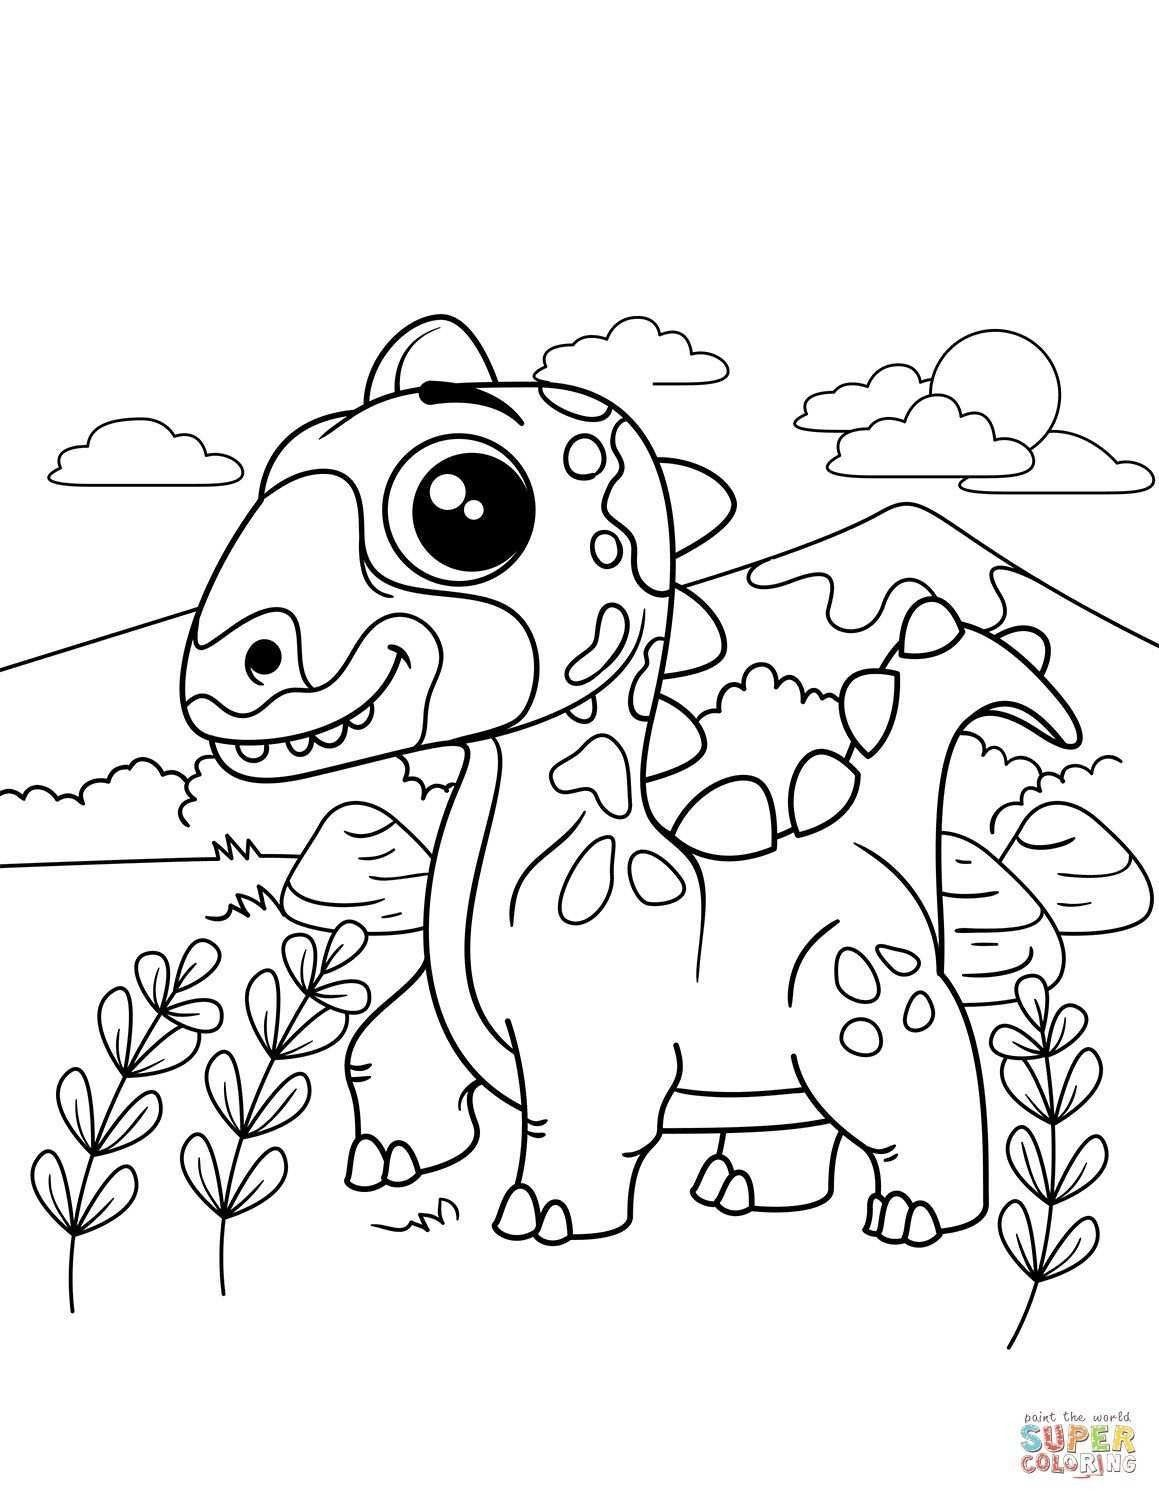 Pin On Top Coloring Pages Ideas For Kids And Adult [ 1500 x 1159 Pixel ]